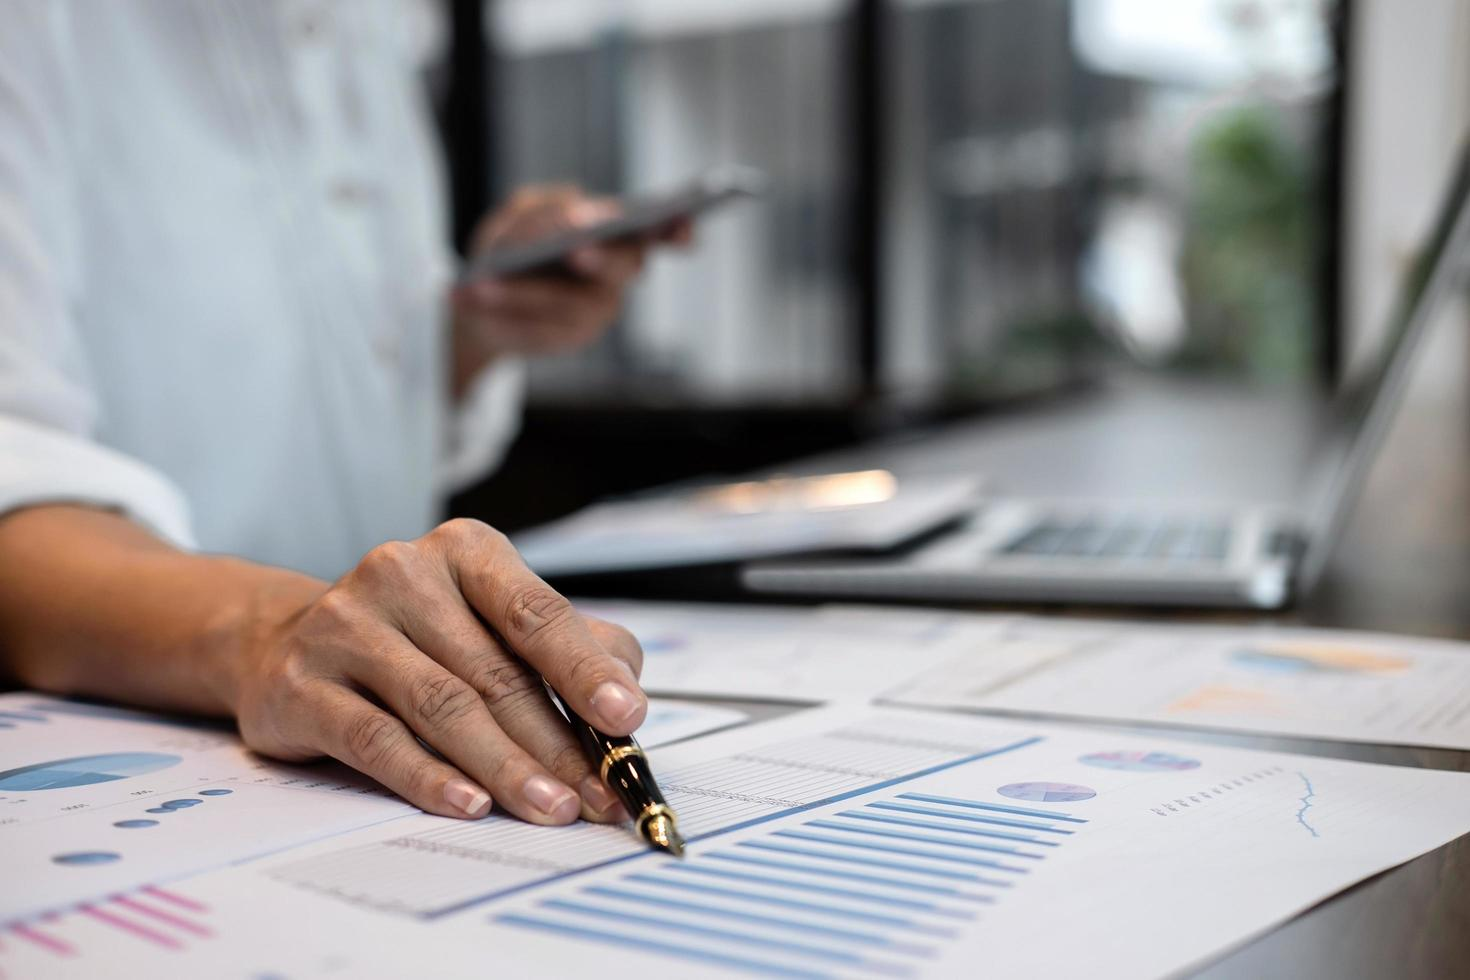 Business person at desk calculating expenses  photo